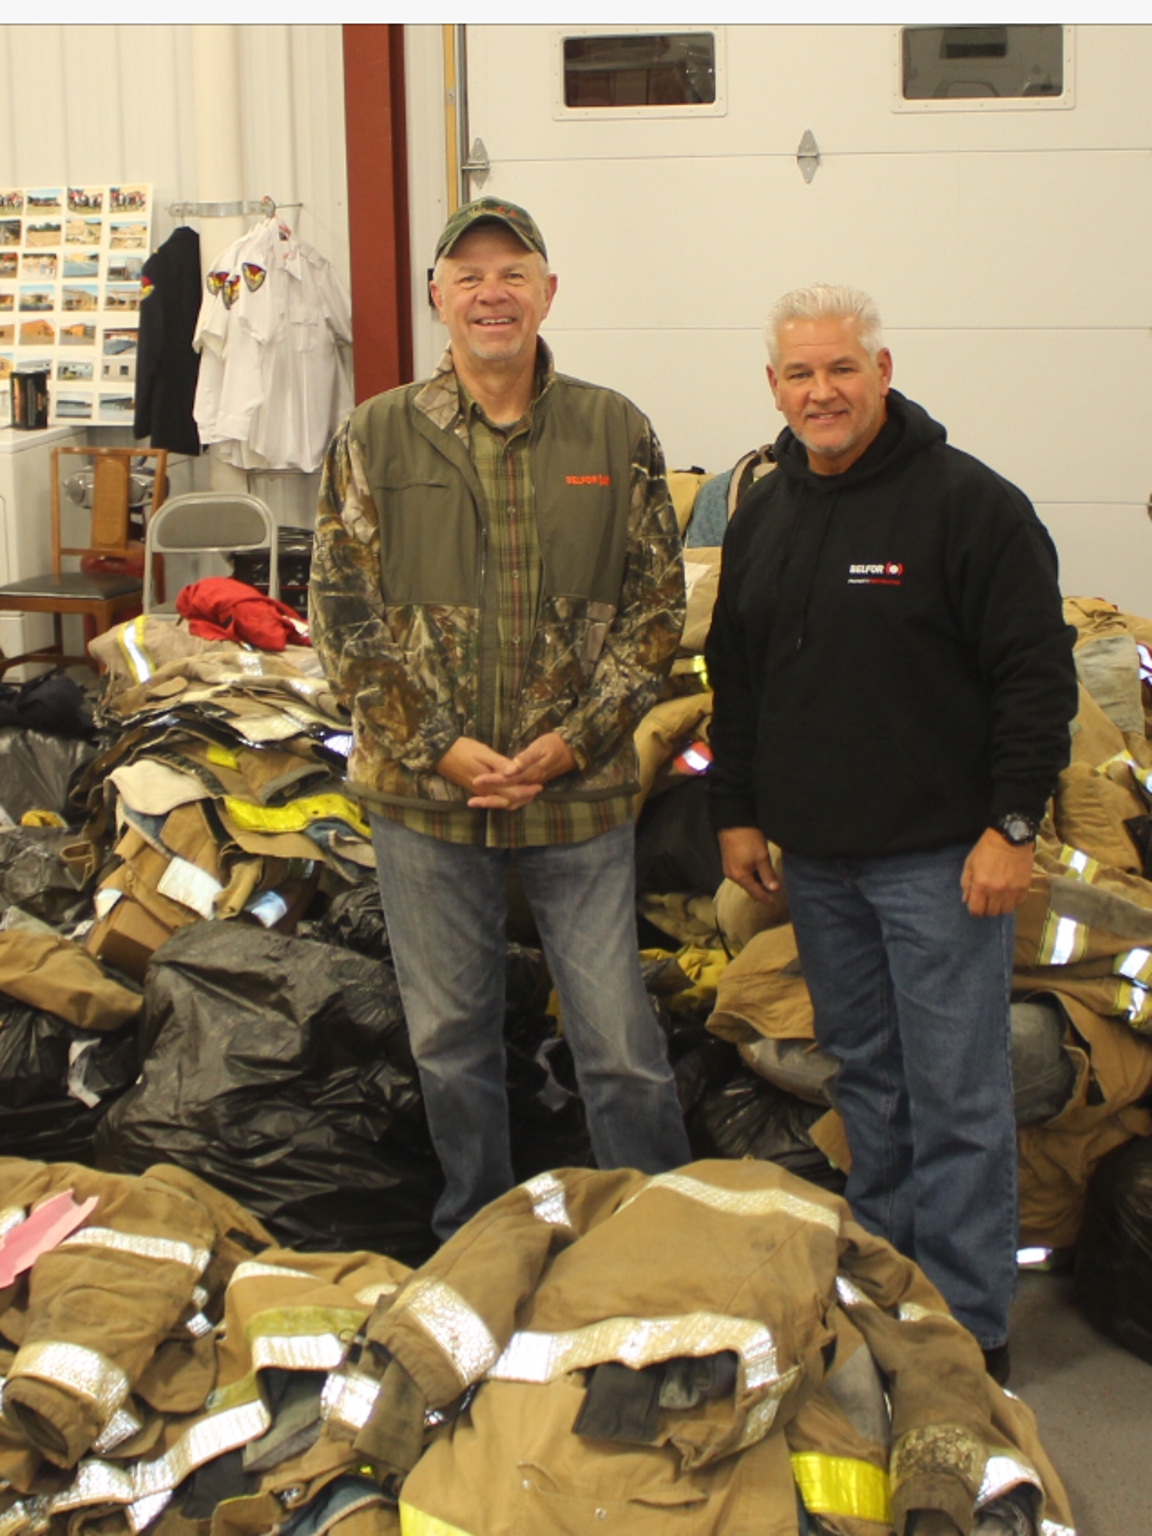 Ray Ahonen (l) and Denny Hughes with some of the collected